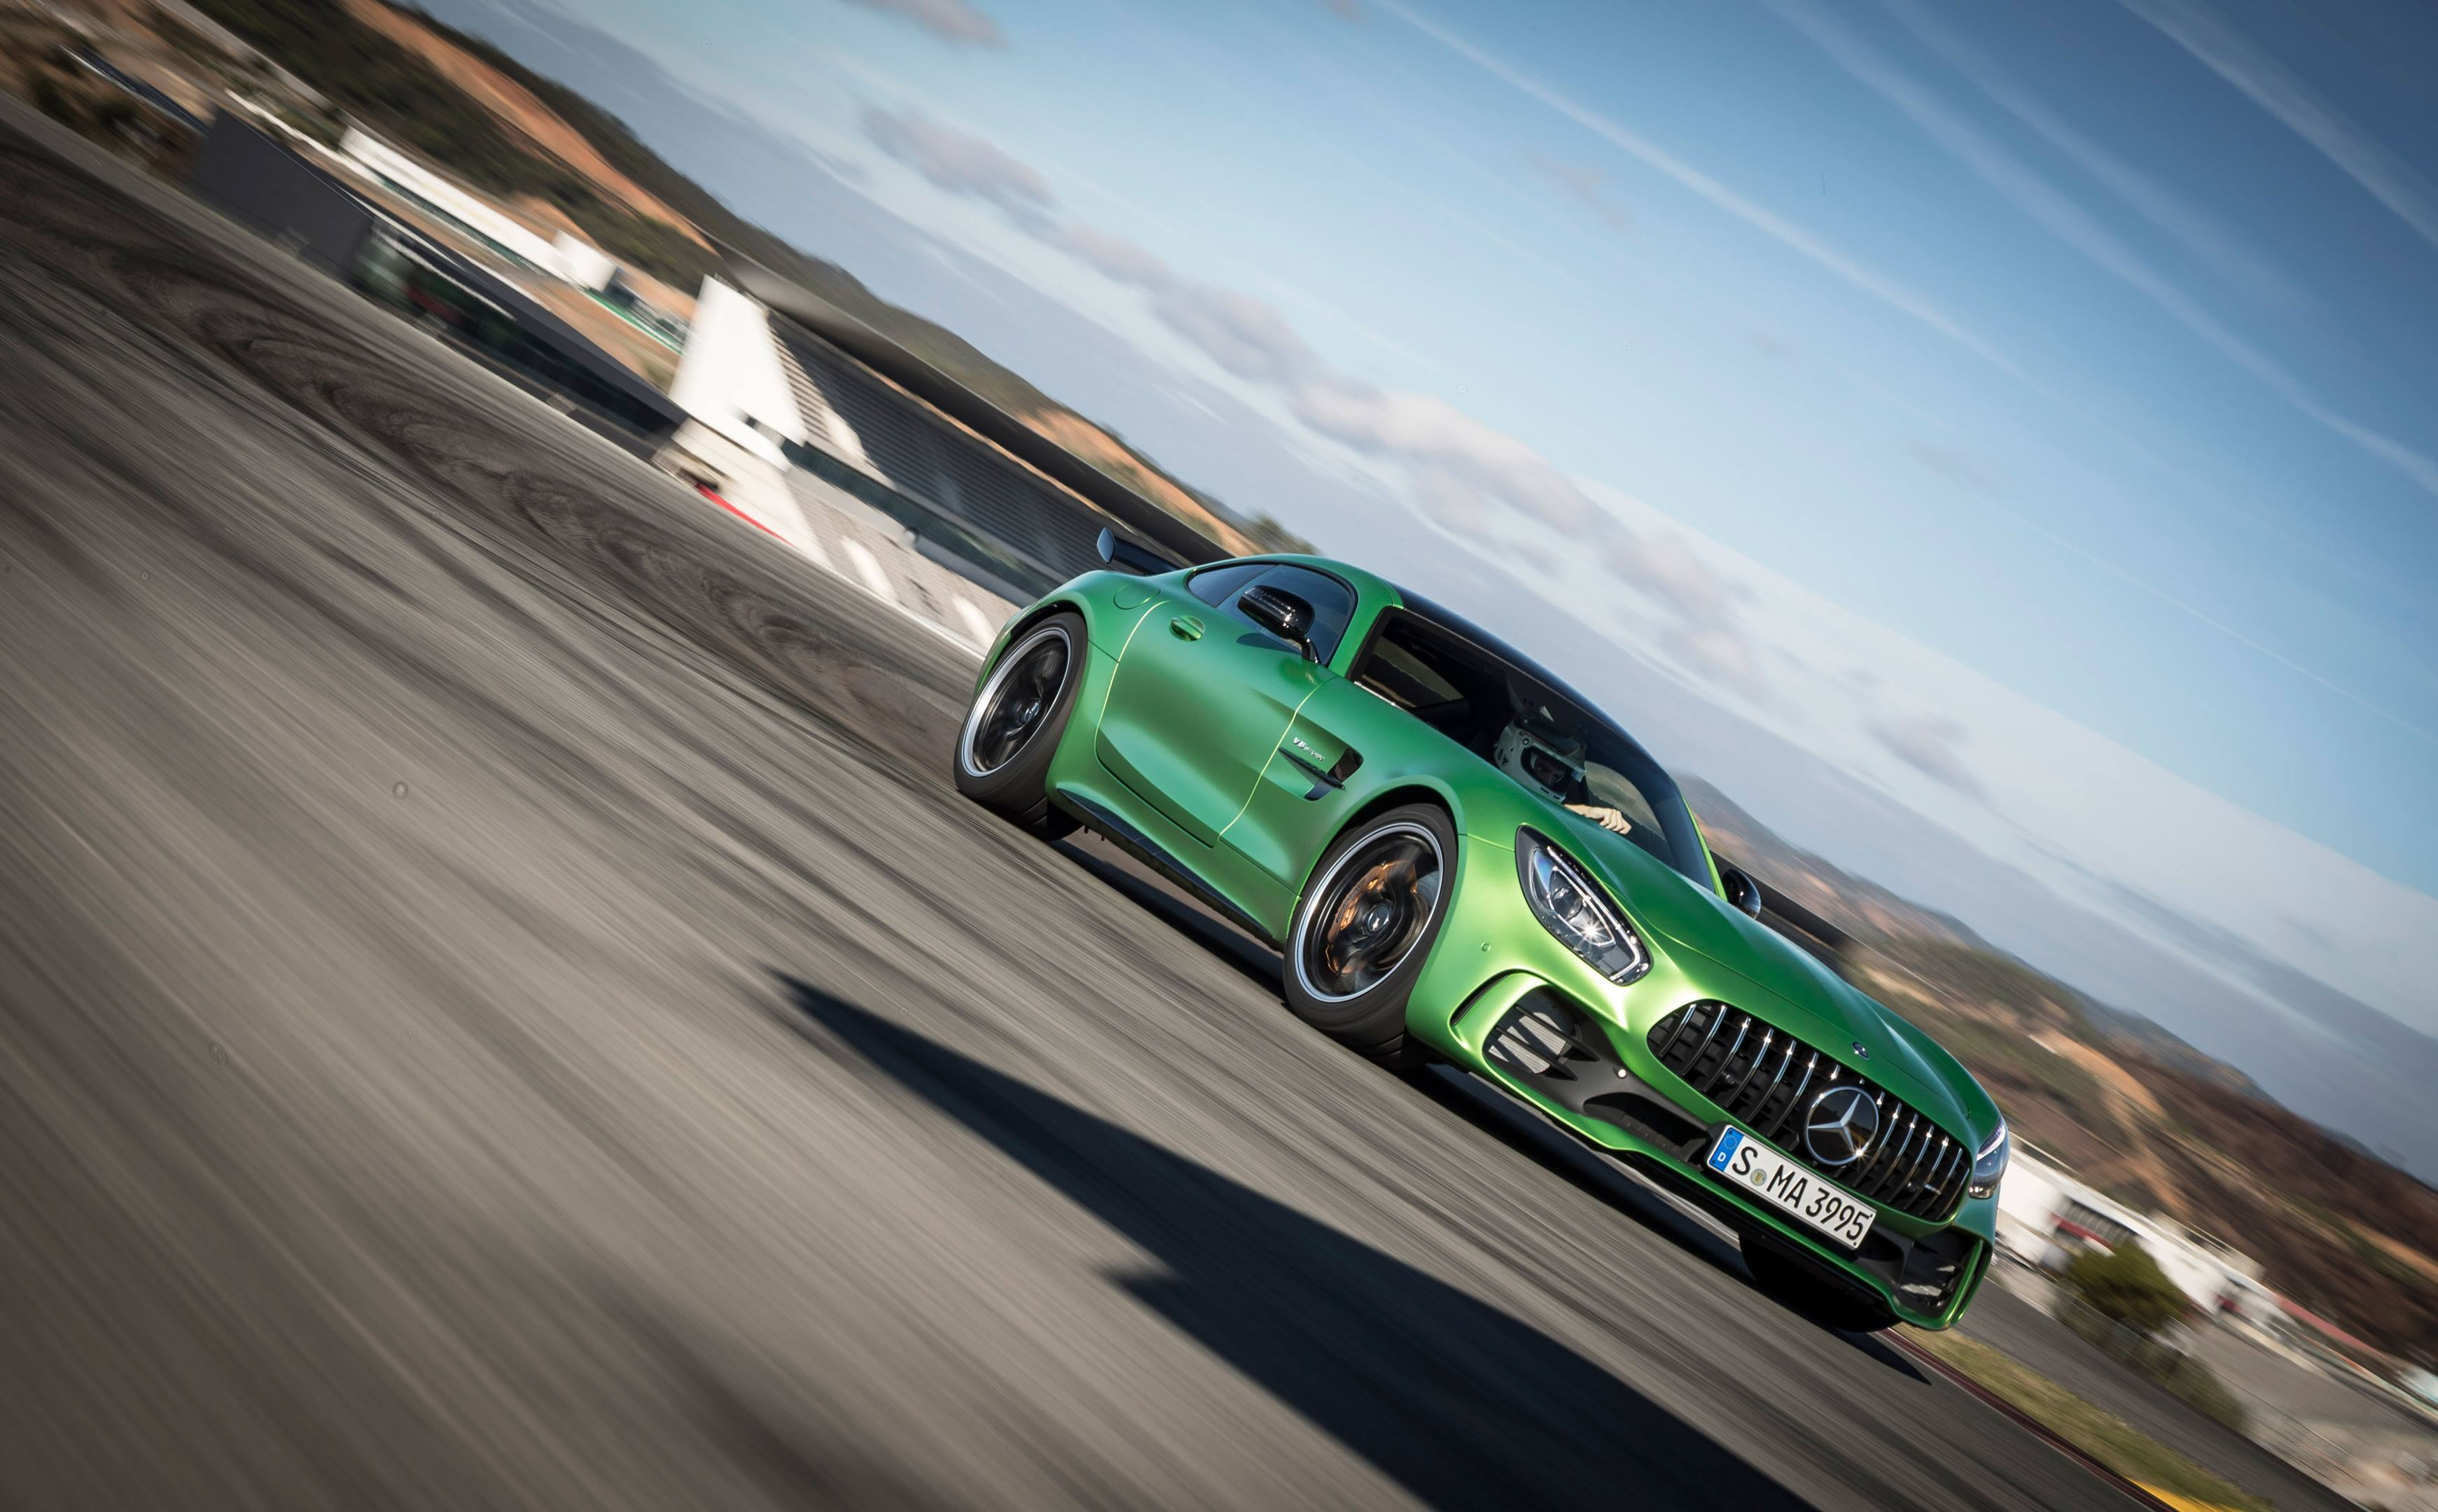 2018 Mercedes-AMG GT R driving